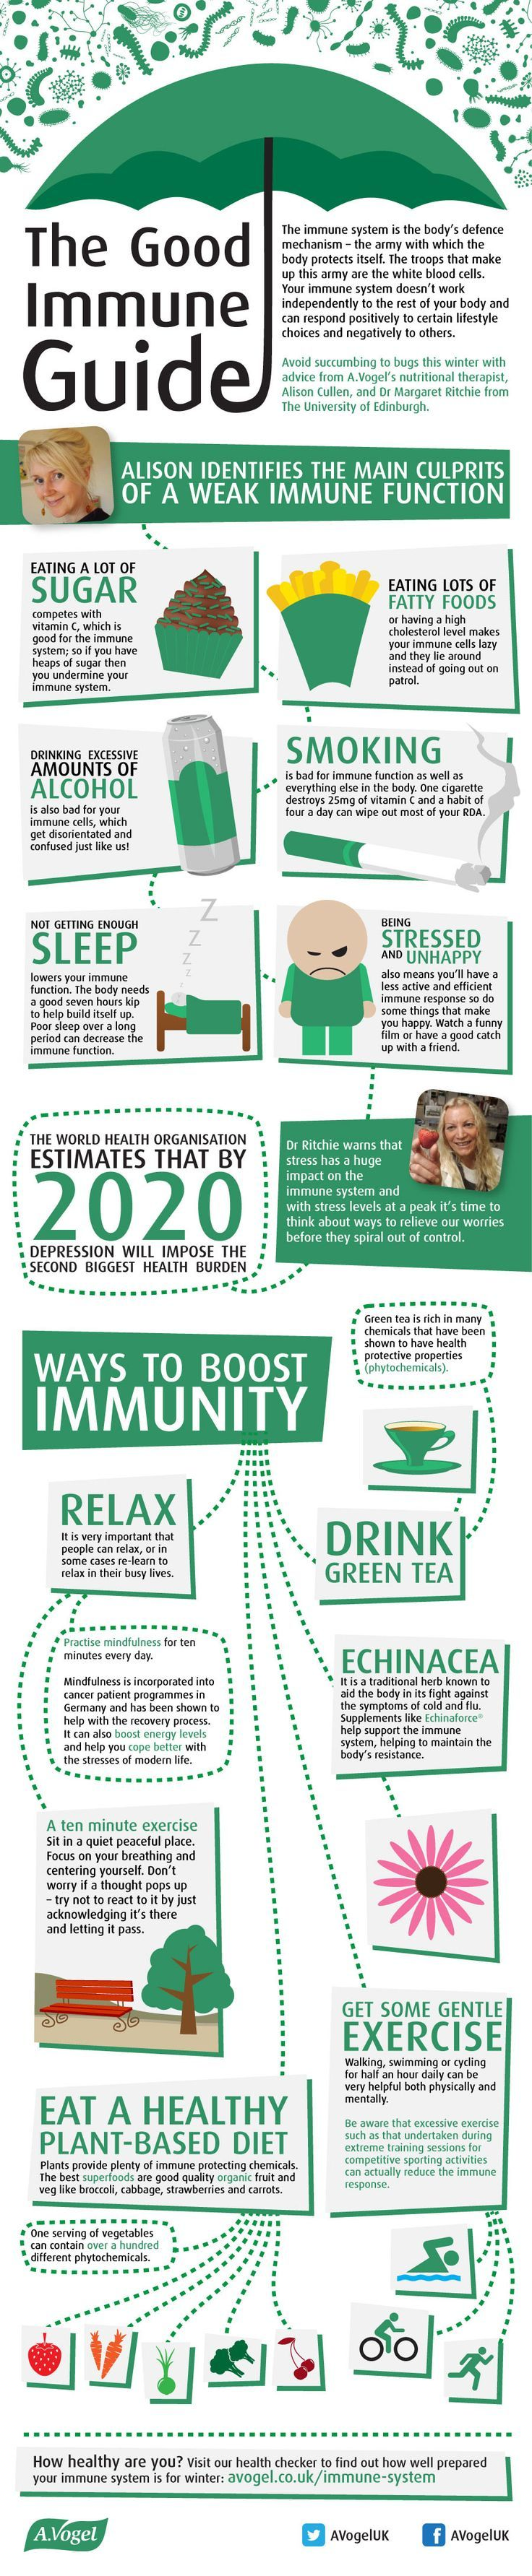 The Good Immune Guide: Tips To Creating A Stronger Immune System. Echinacea should not be used by people with HIV.